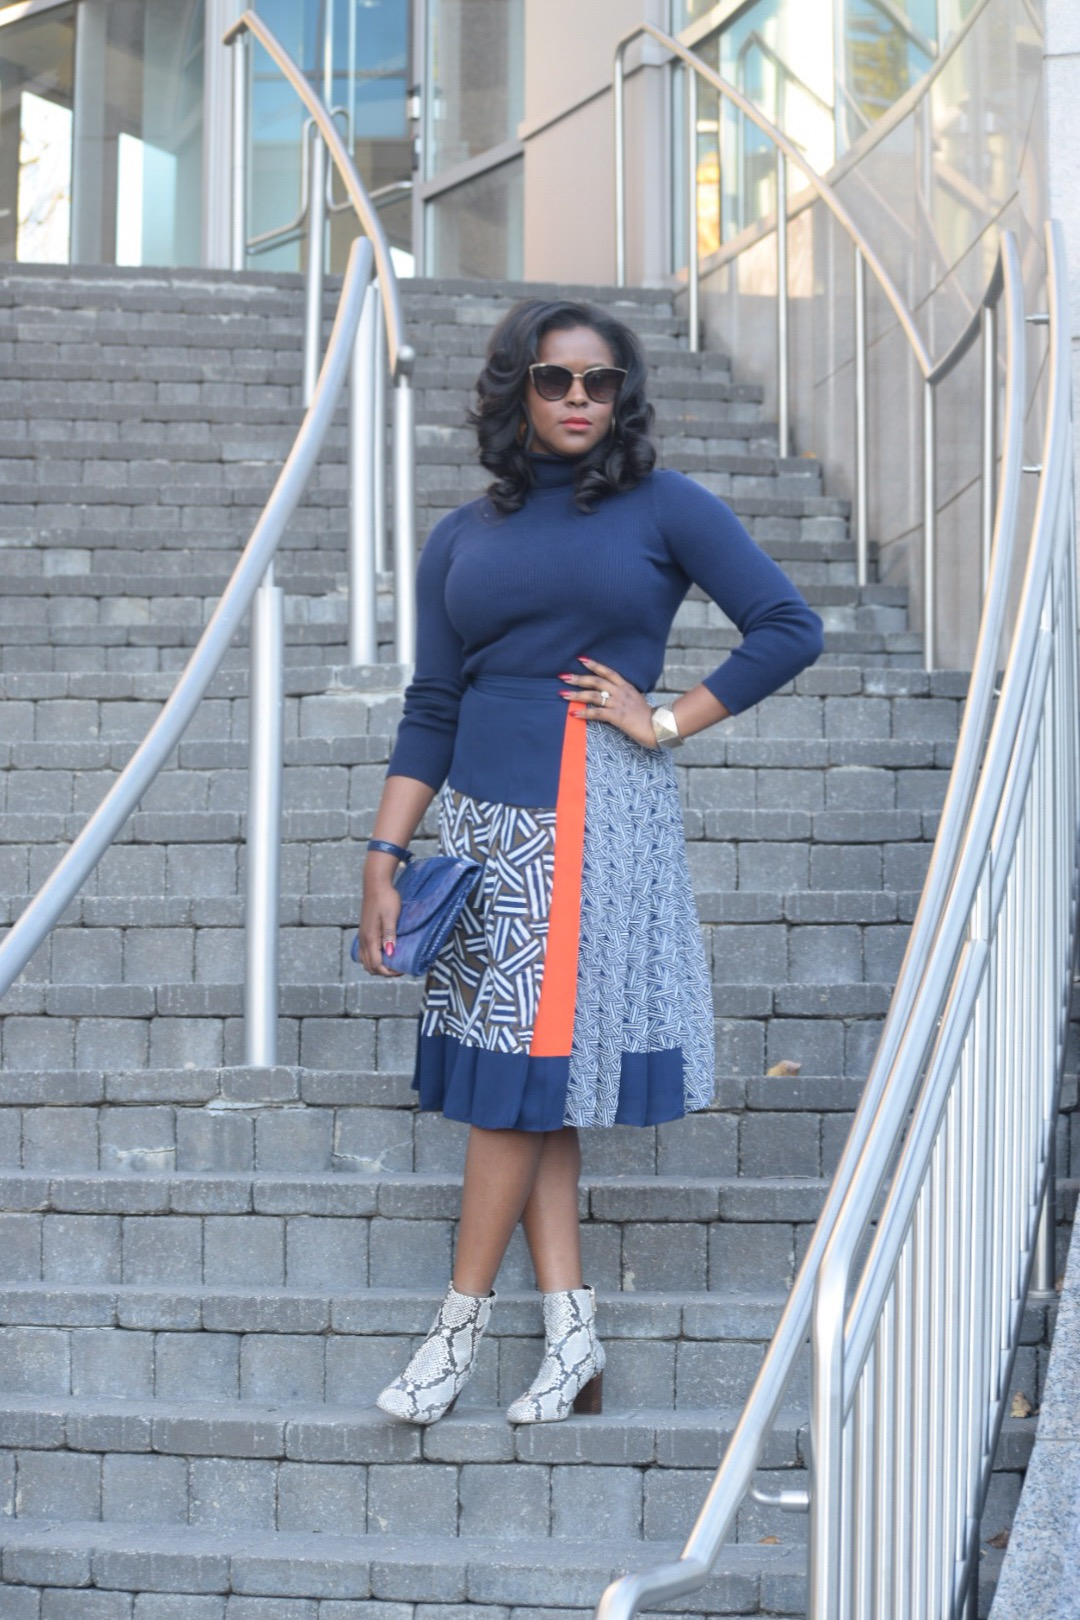 DVF Skirt (on sale now! here ), Ralph Lauren Turtleneck ( here ), J Crew Booties (recently sold out, however J Crew has four styles with this print  here )